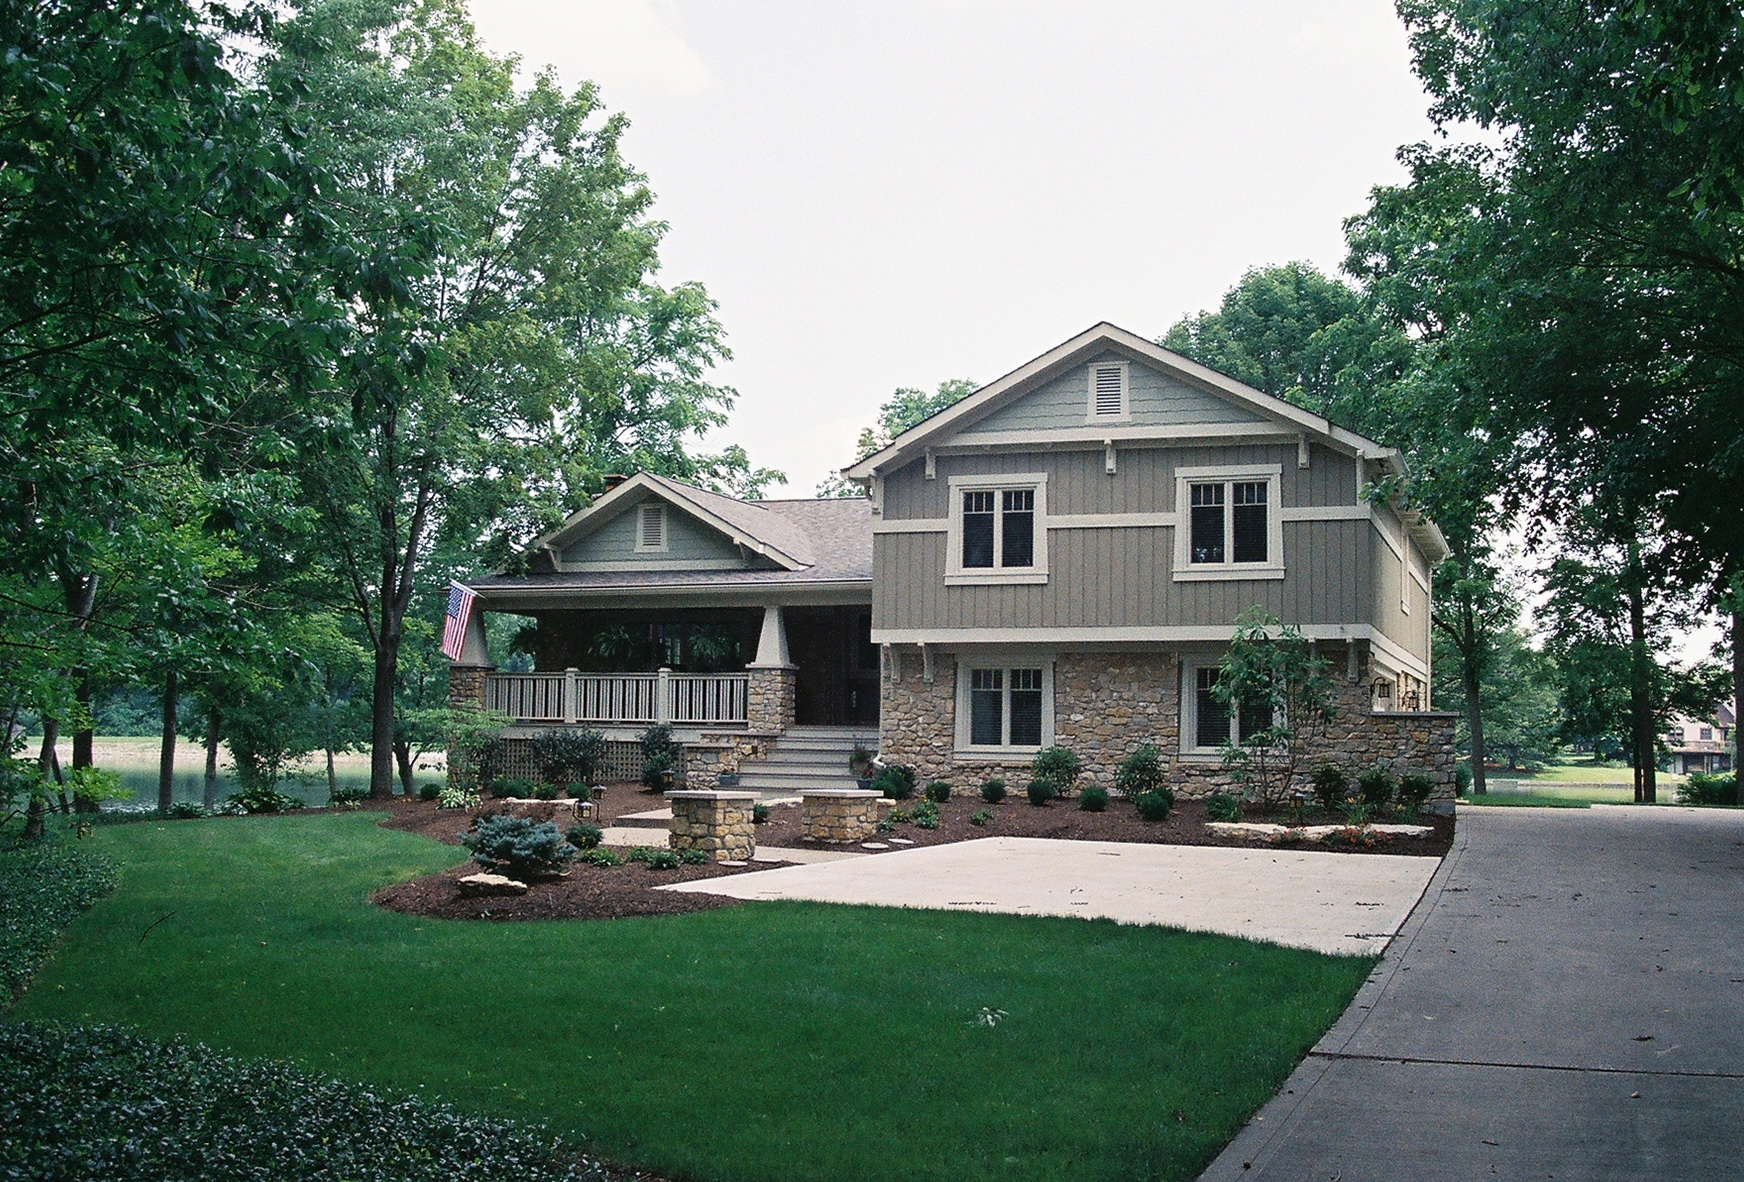 Adding Front Porch To Split Level Home Home Design Ideas within dimensions 1744 X 1182